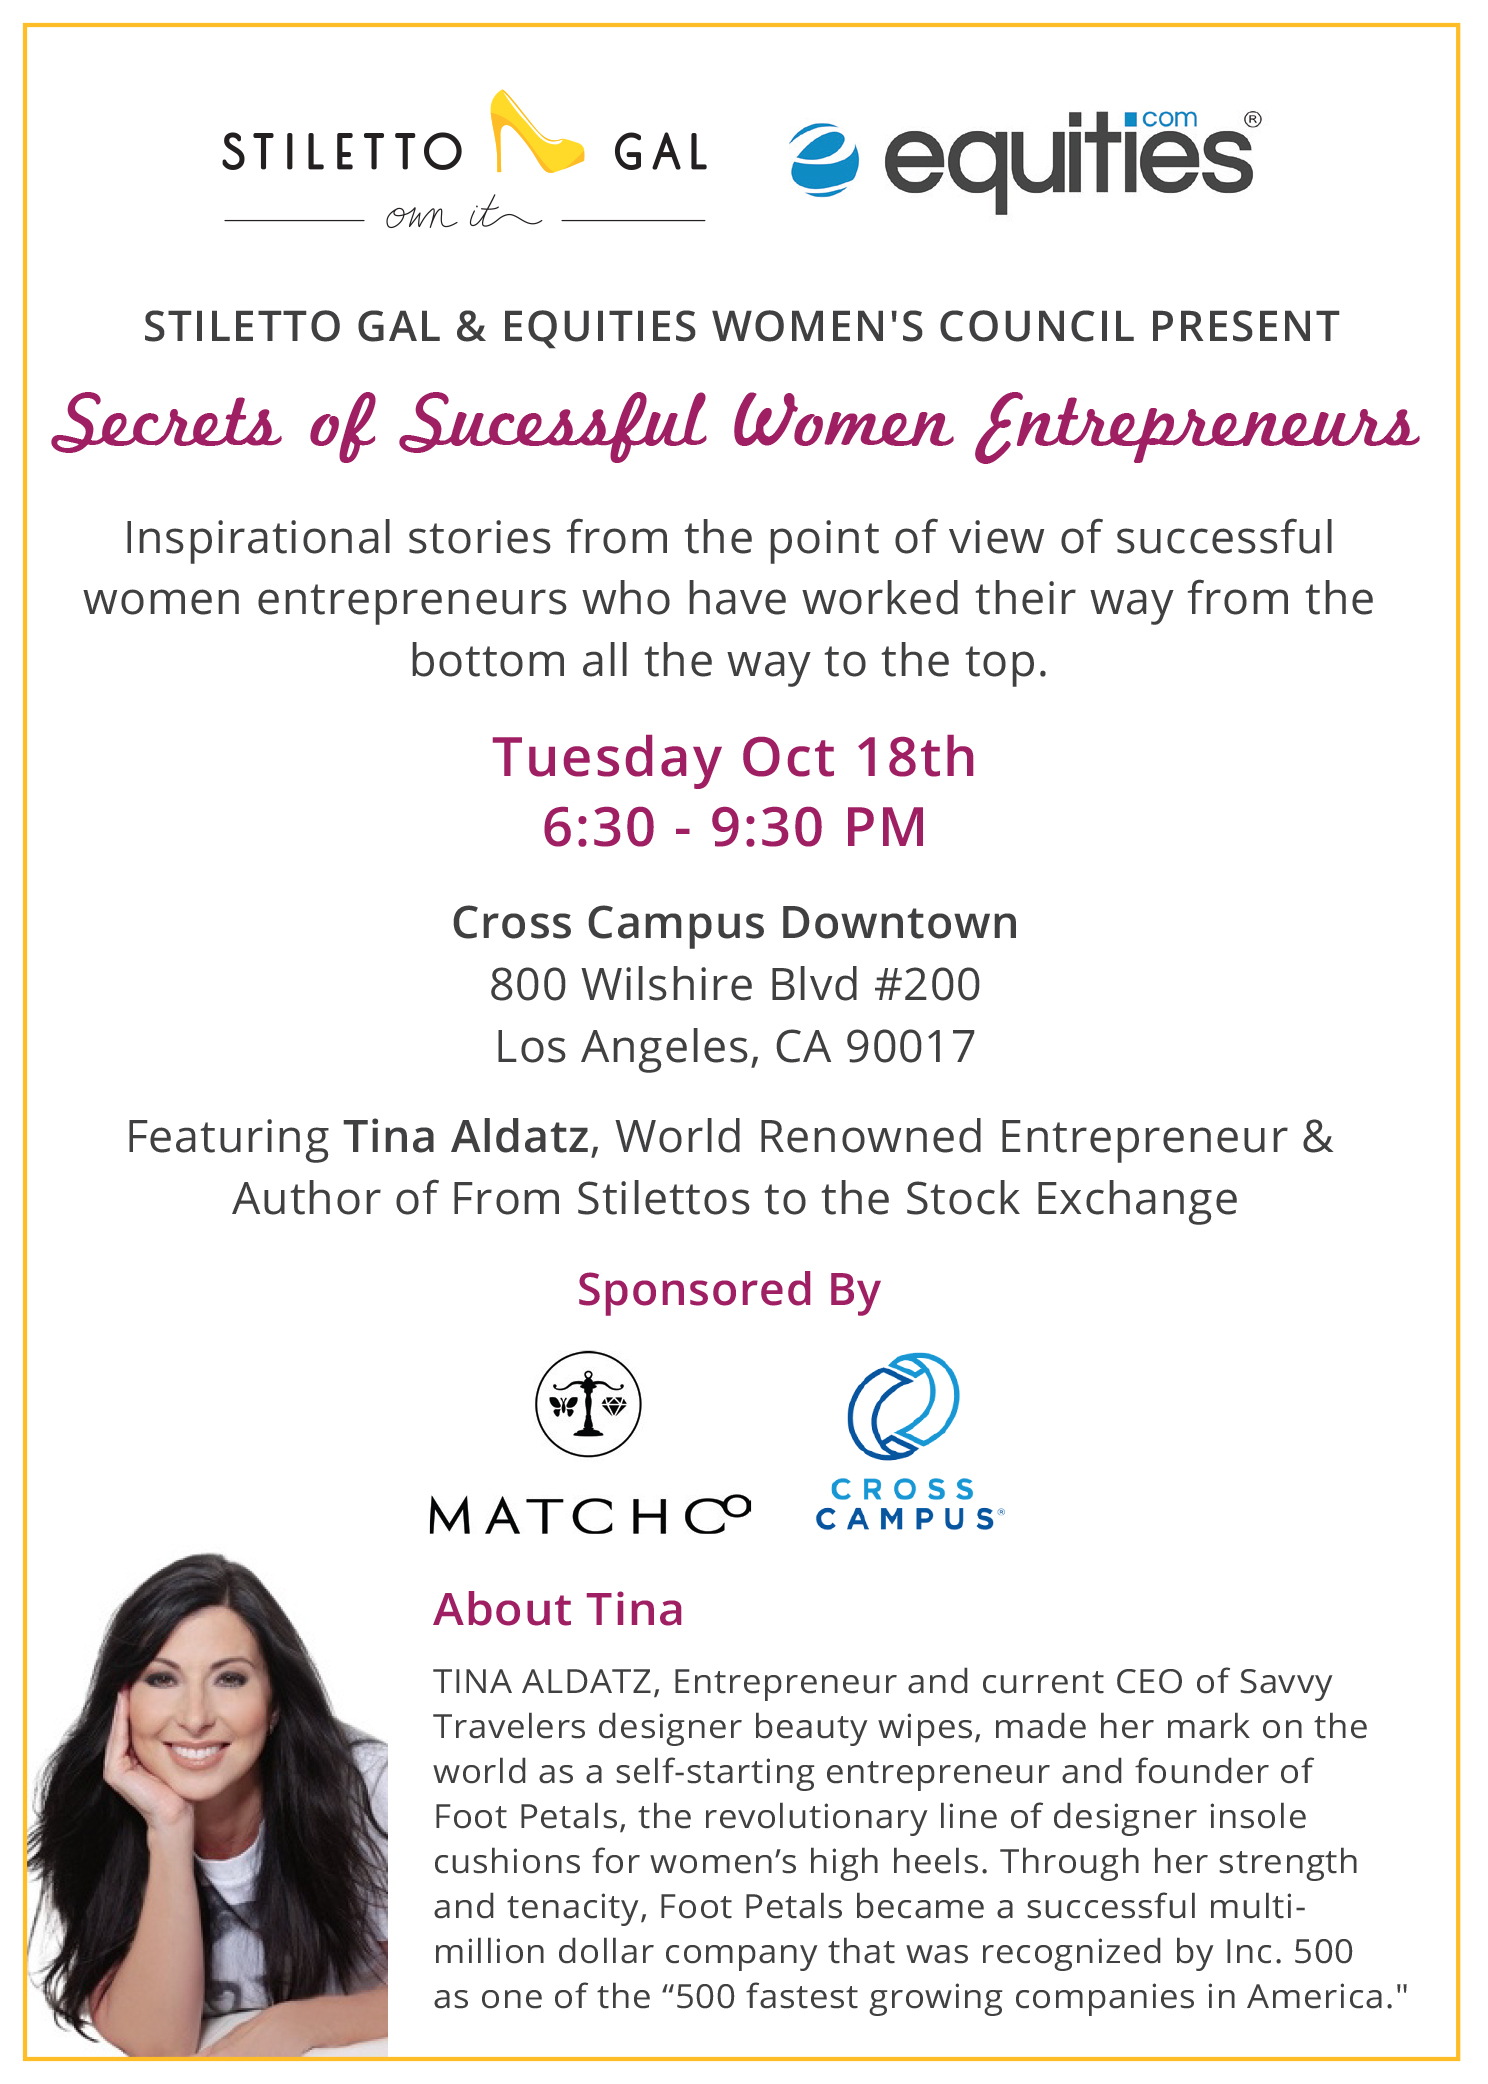 Secrets of Successful Women Entrepreneurs: Tina Aldatz